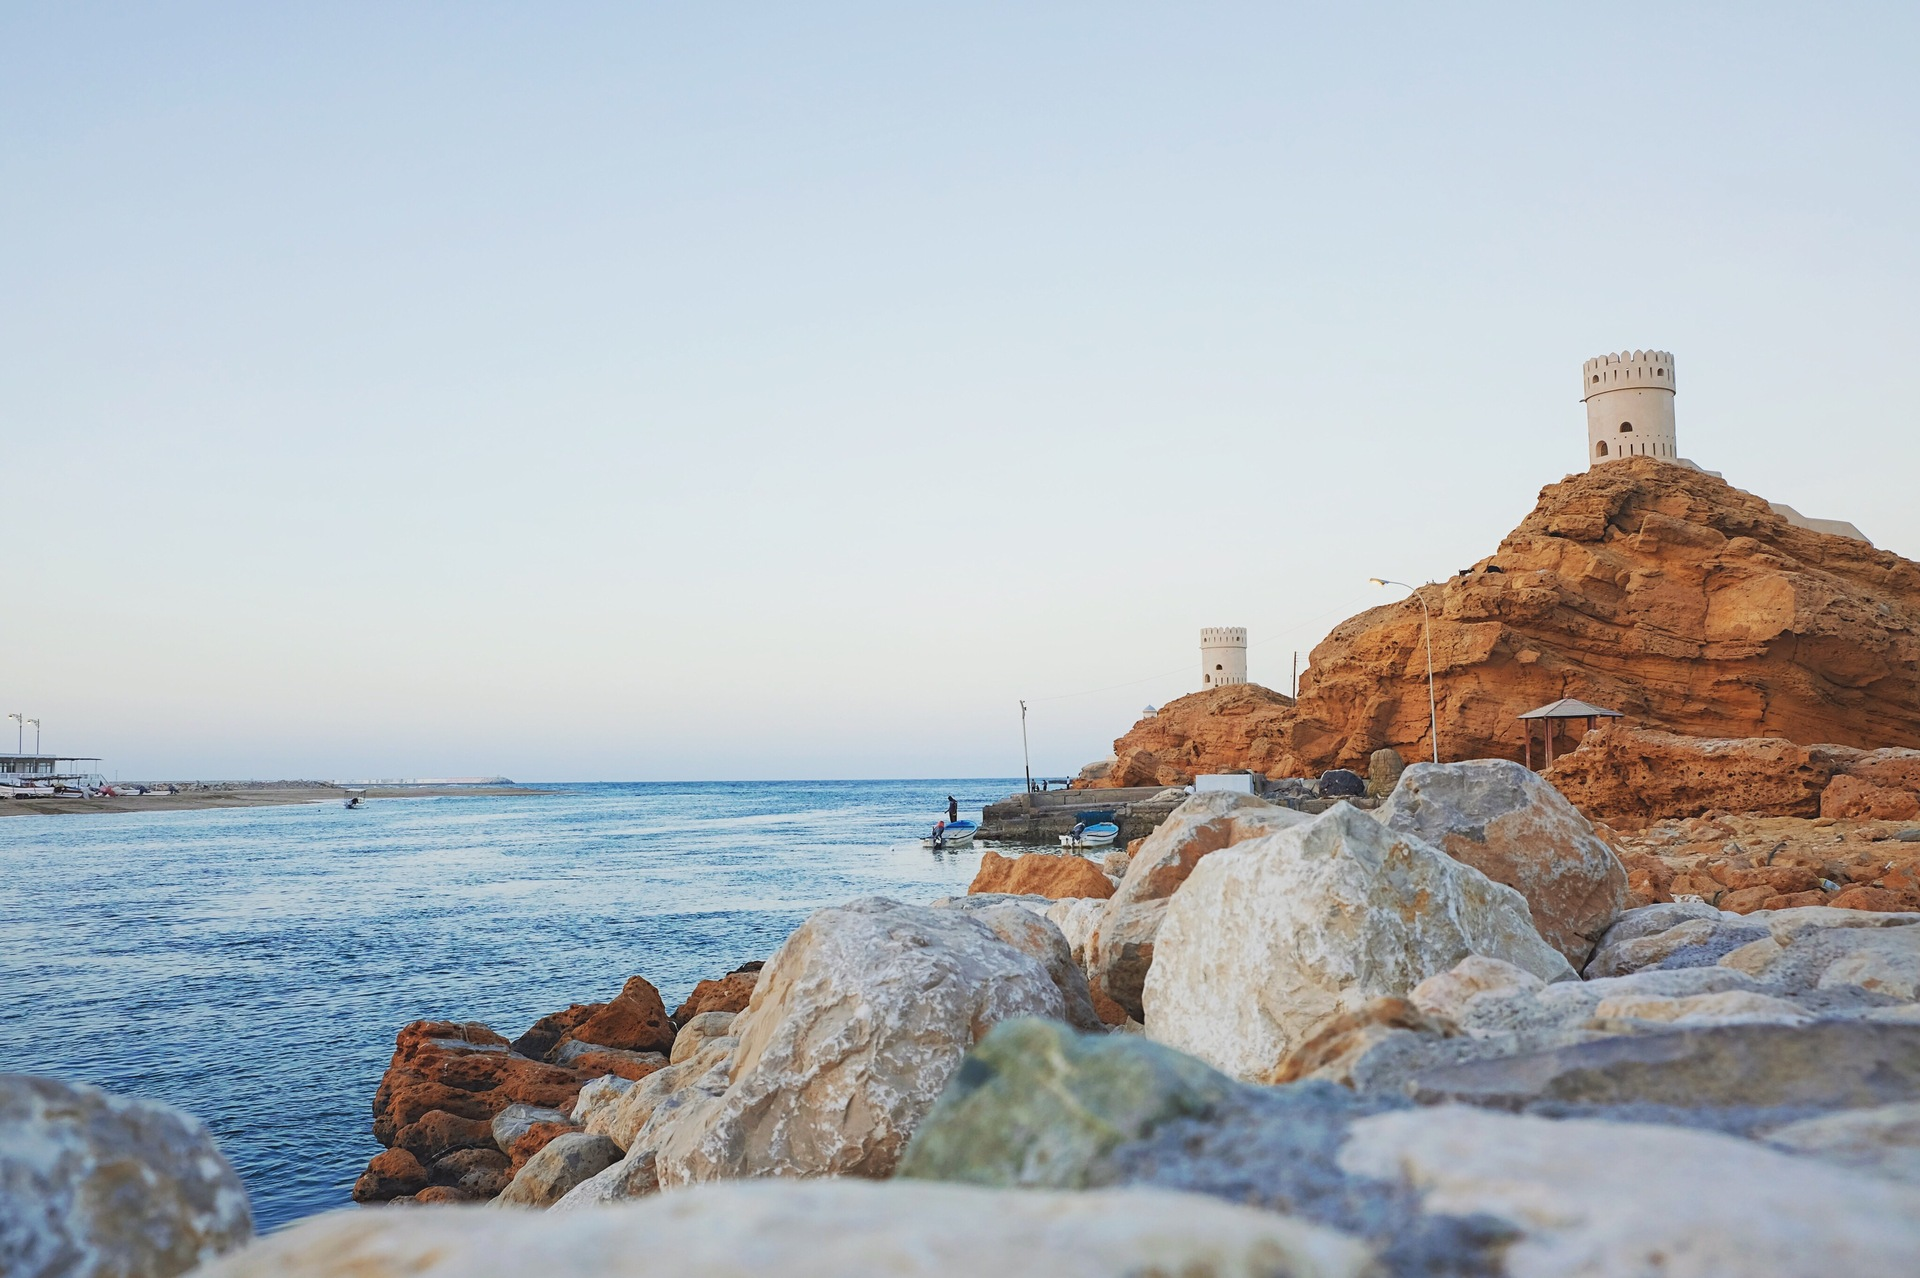 Watch tower at Sur, Oman